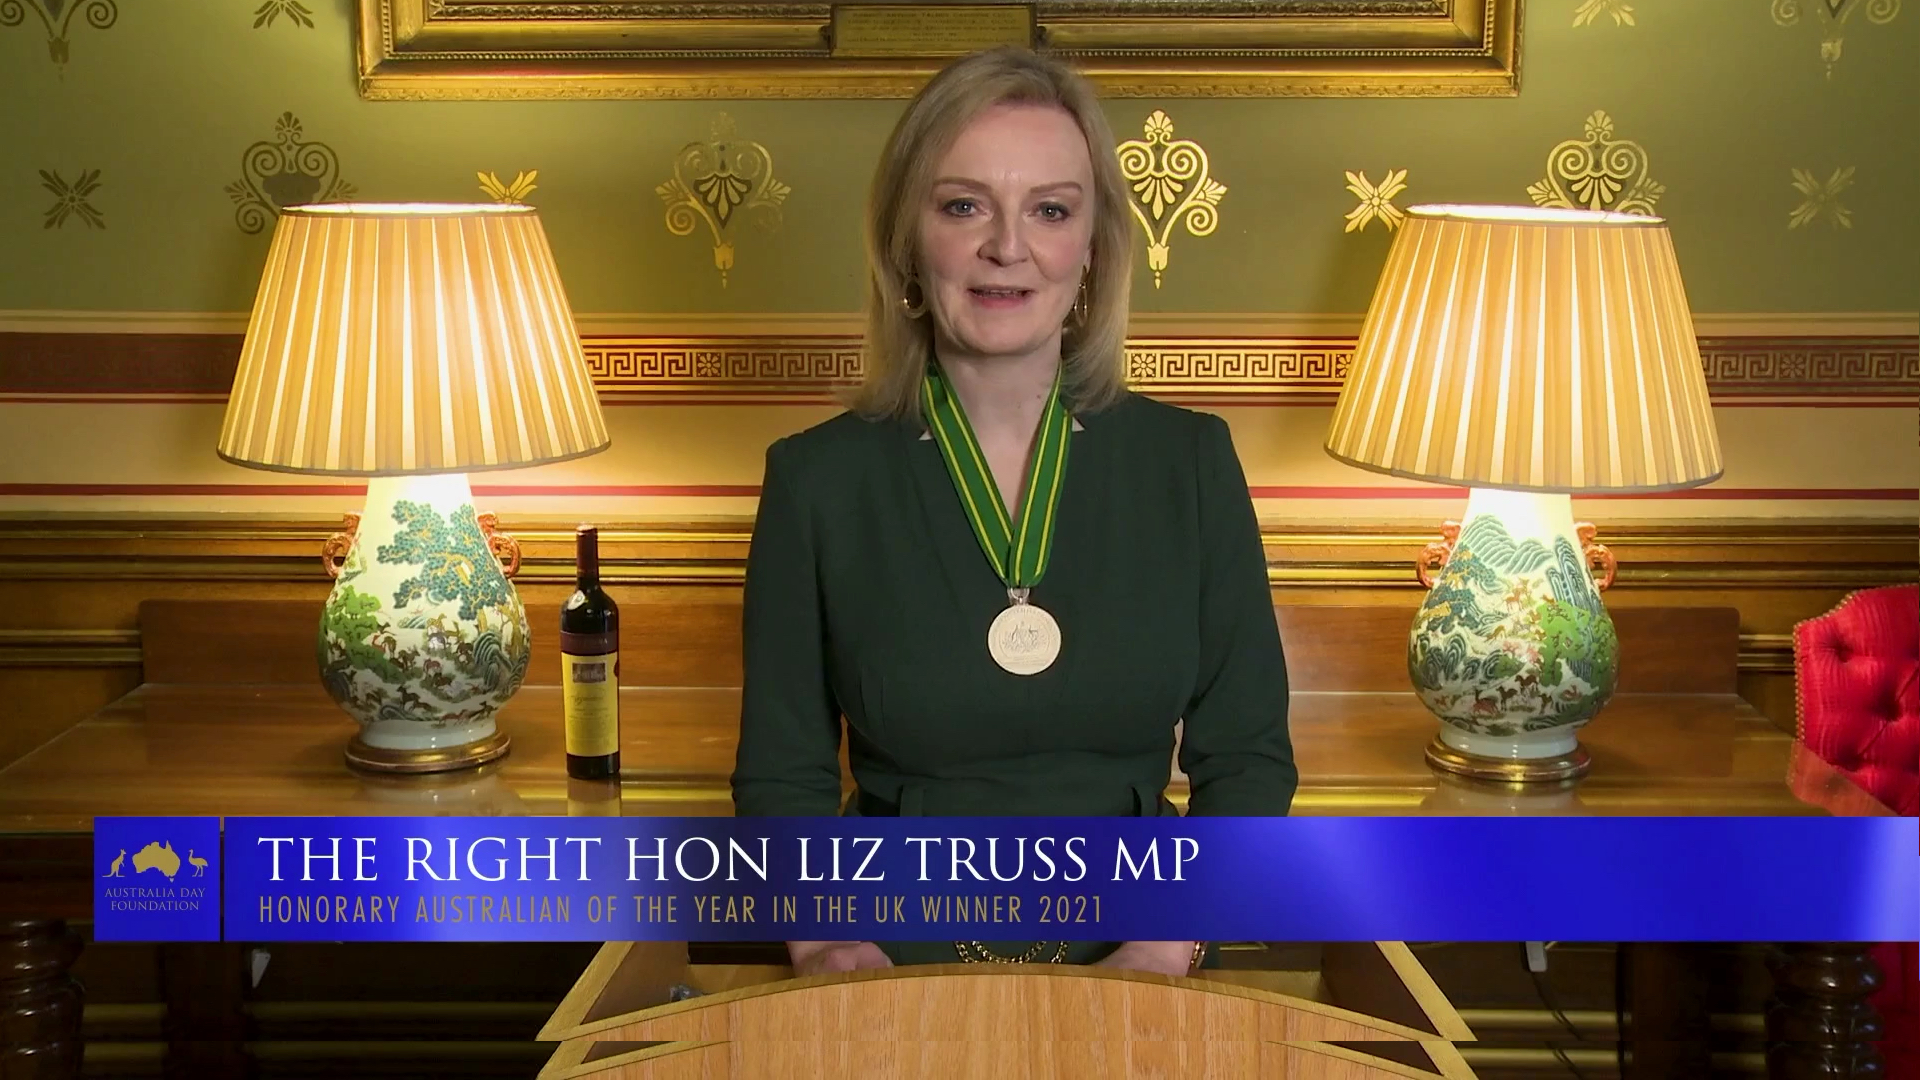 Liz Truss Winner